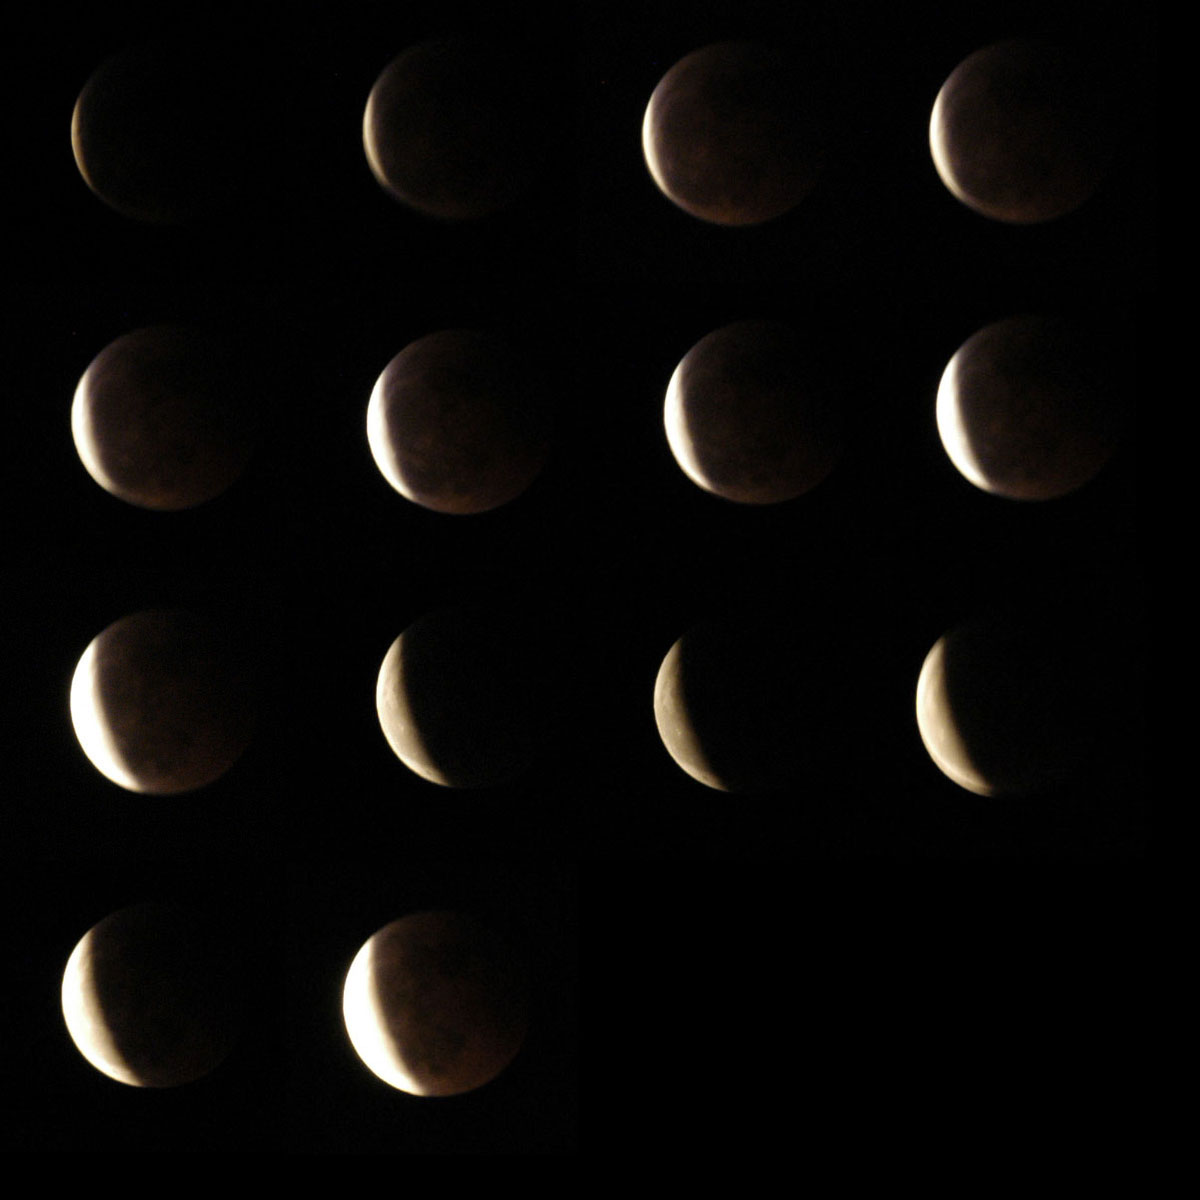 Eclipse Mosaic Sequence, left to right, top to bottom